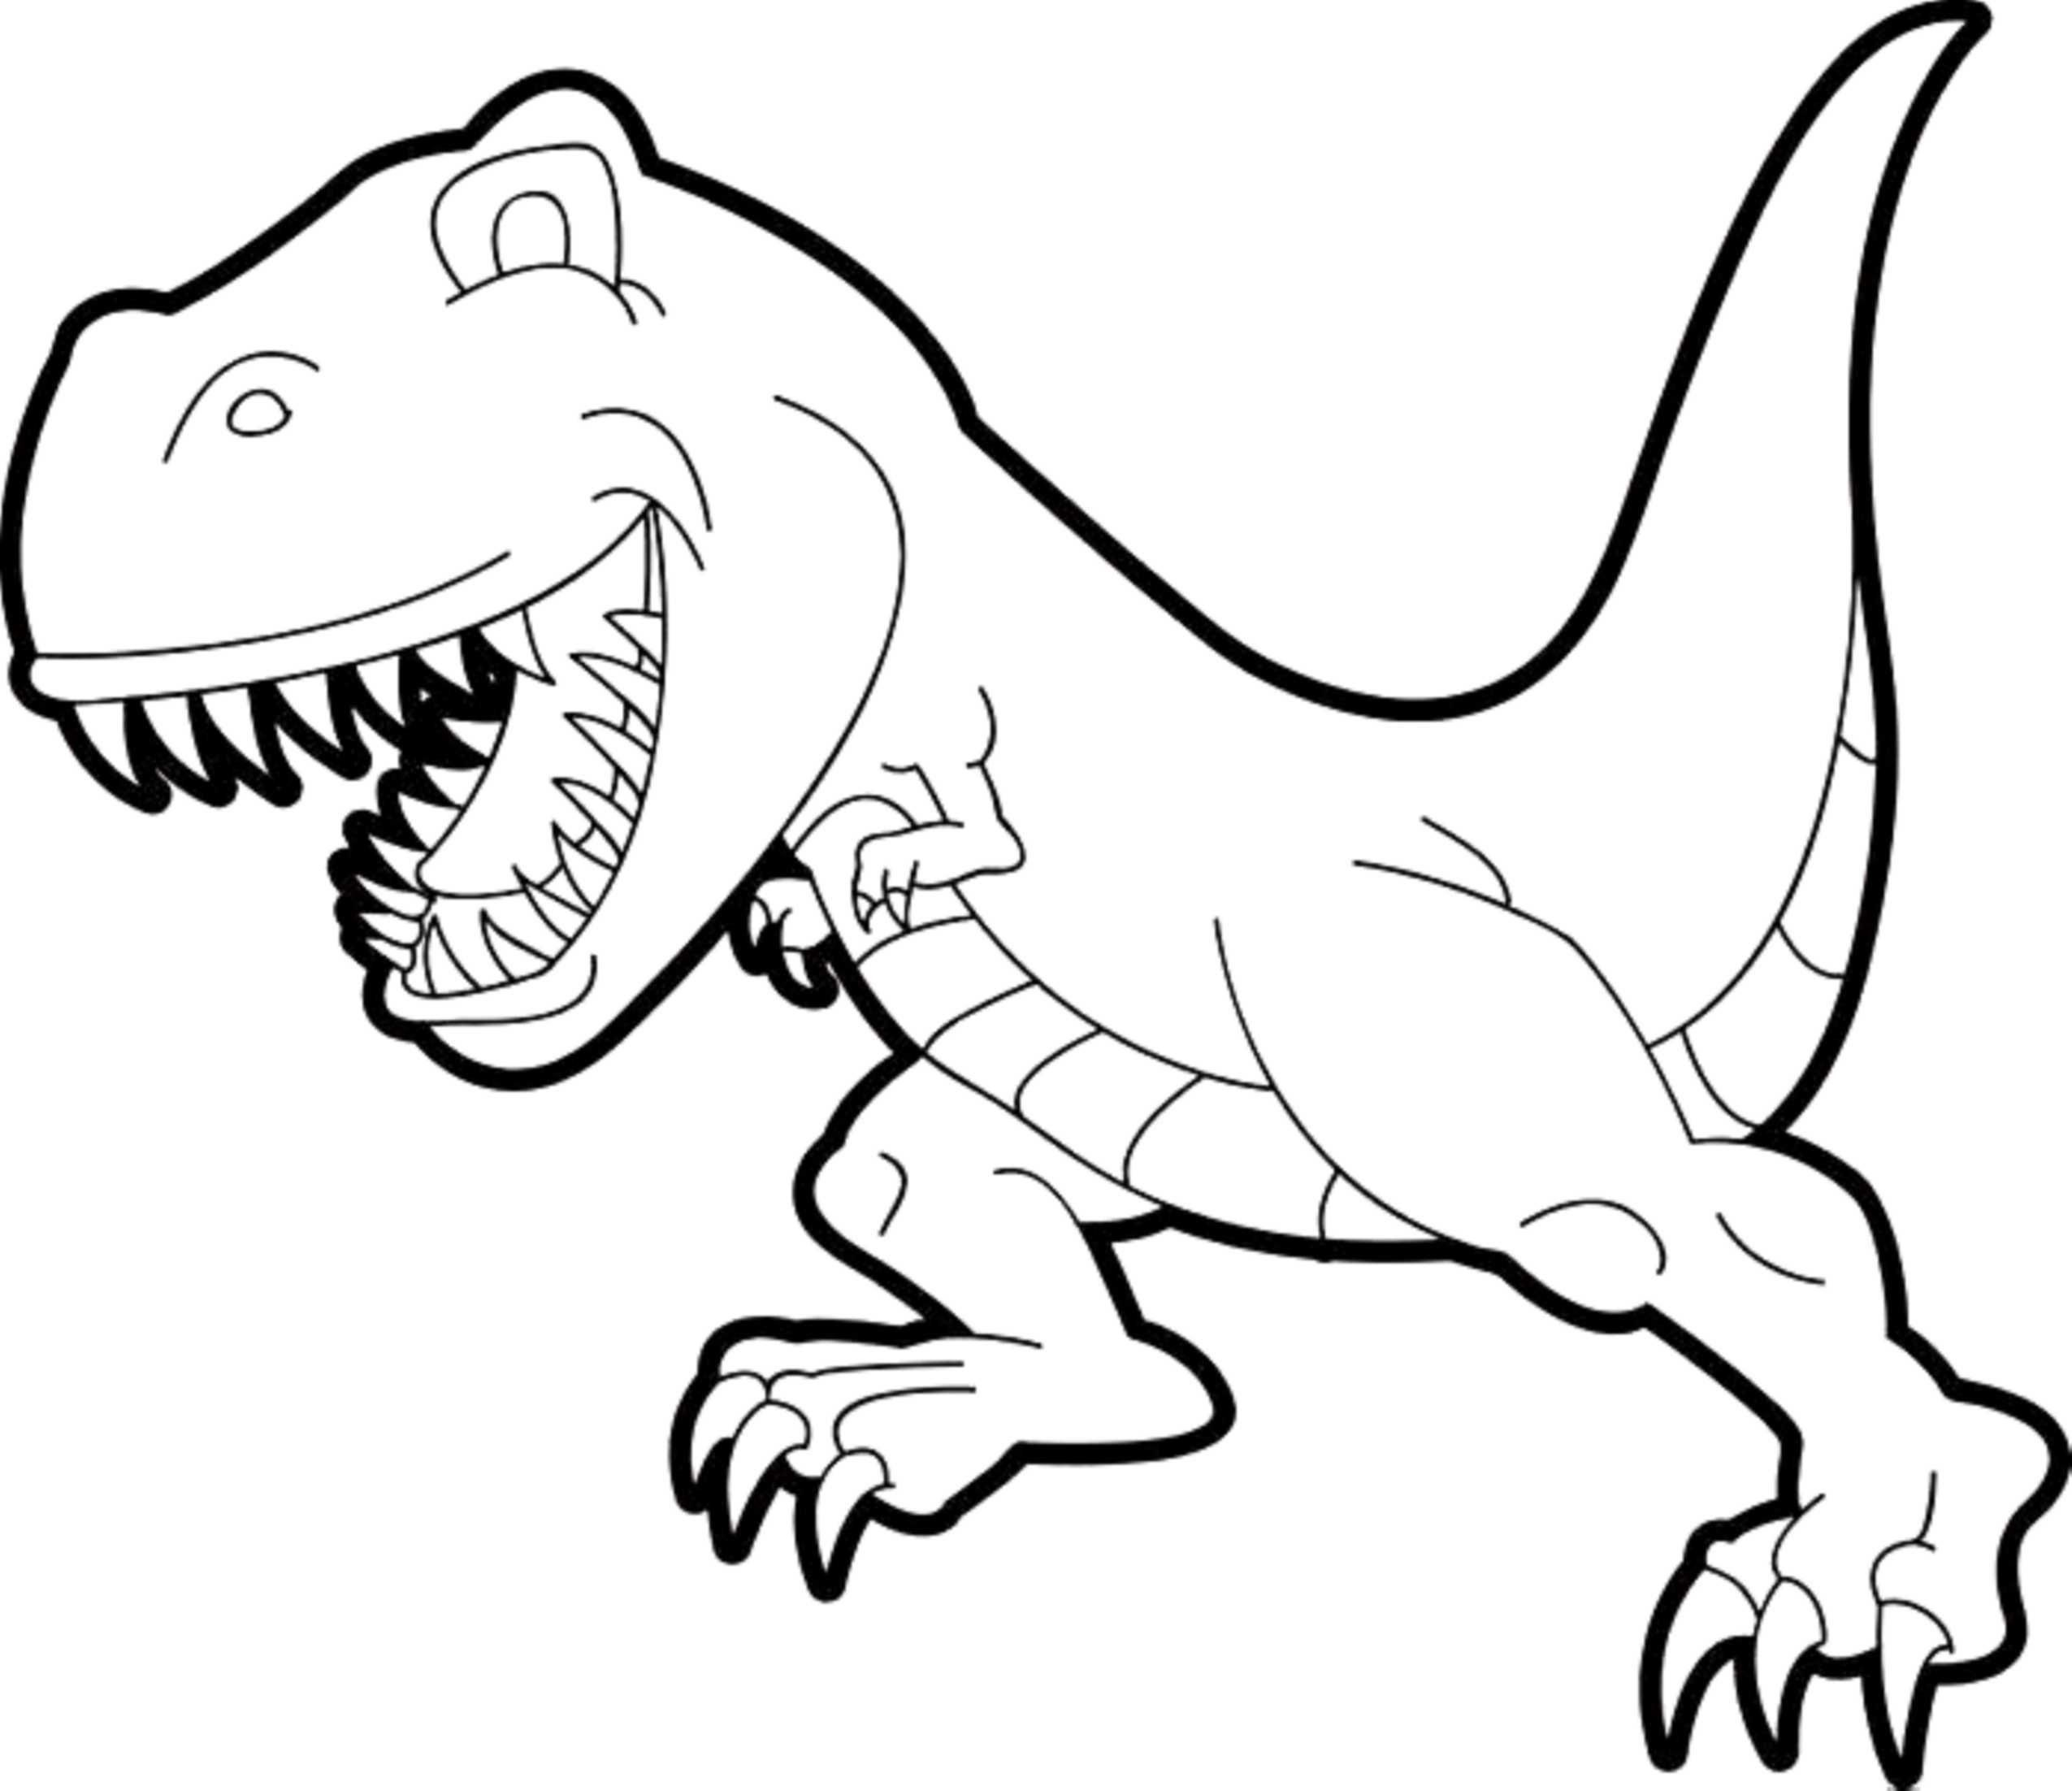 Jurassic World Dinosaur Coloring Pages Pdf